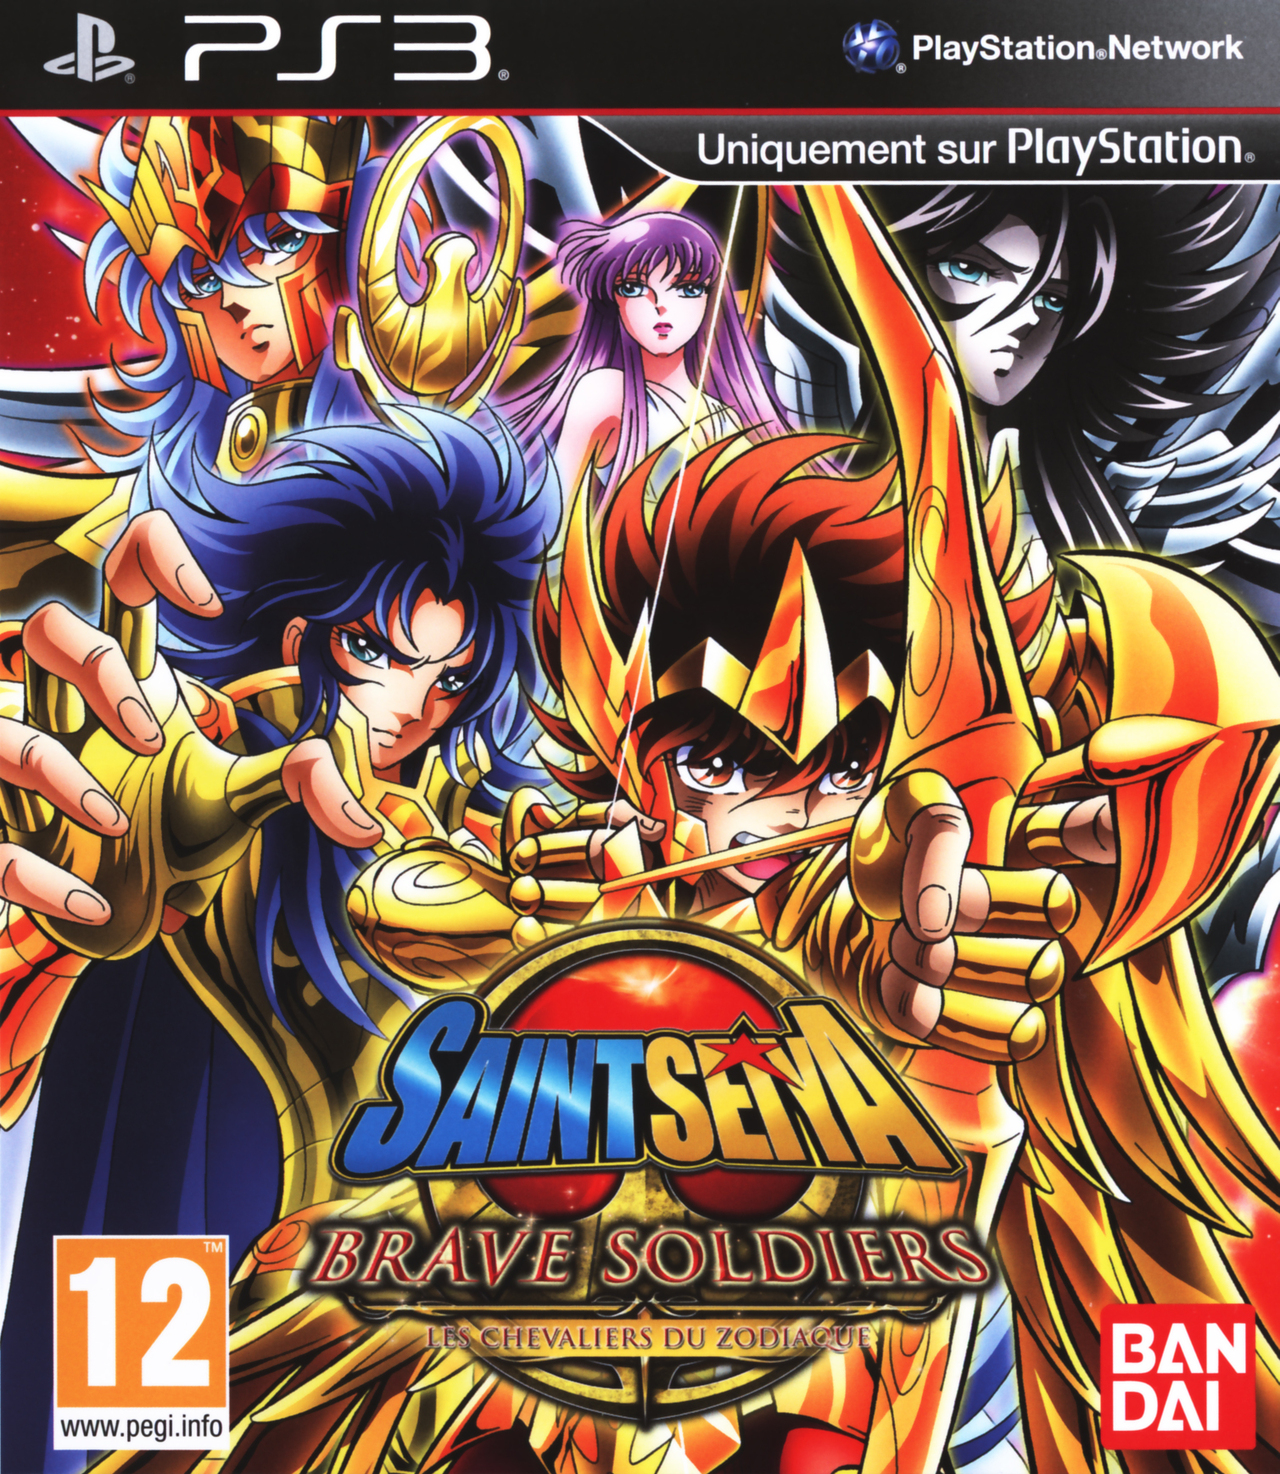 jaquette-saint-seiya-brave-soldiers-playstation-3-ps3-cover-avant-g-1384956324.jpg